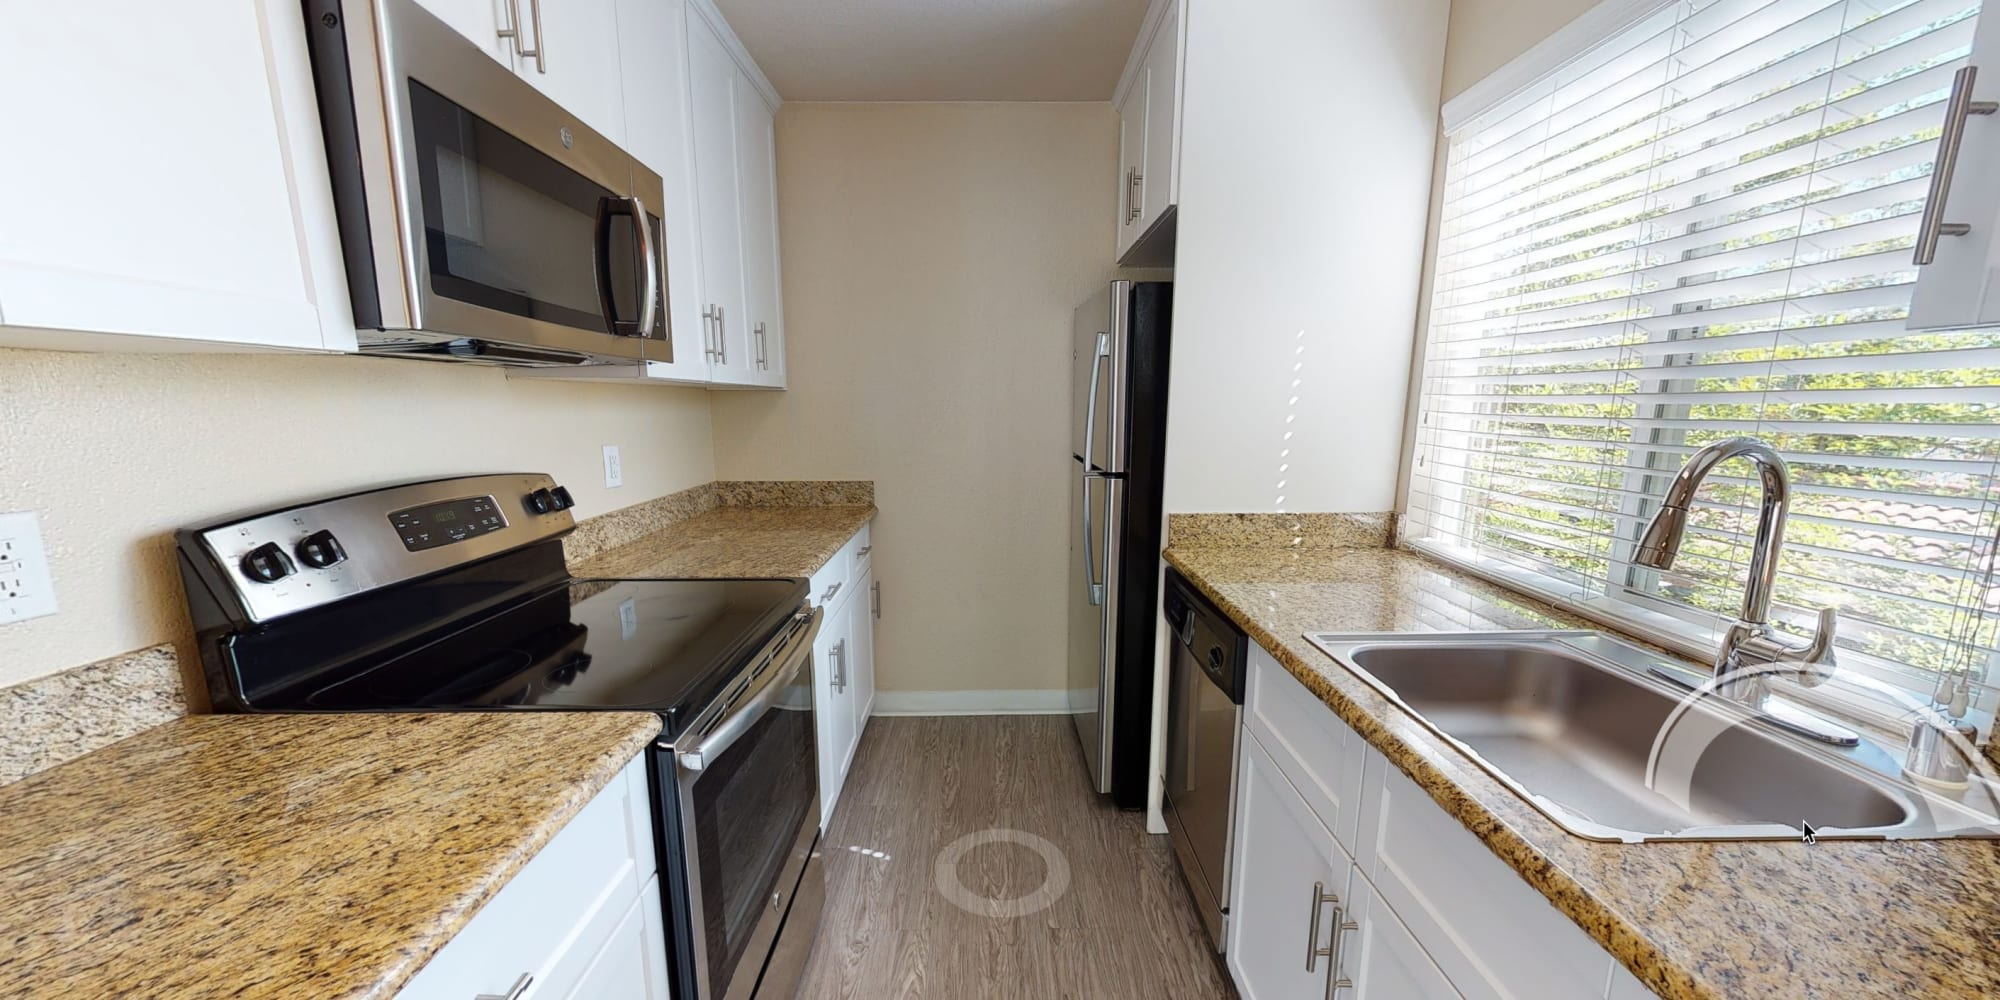 View a virtual tour of our 2 bedroom apartments at Valley Plaza Villages in Pleasanton, California